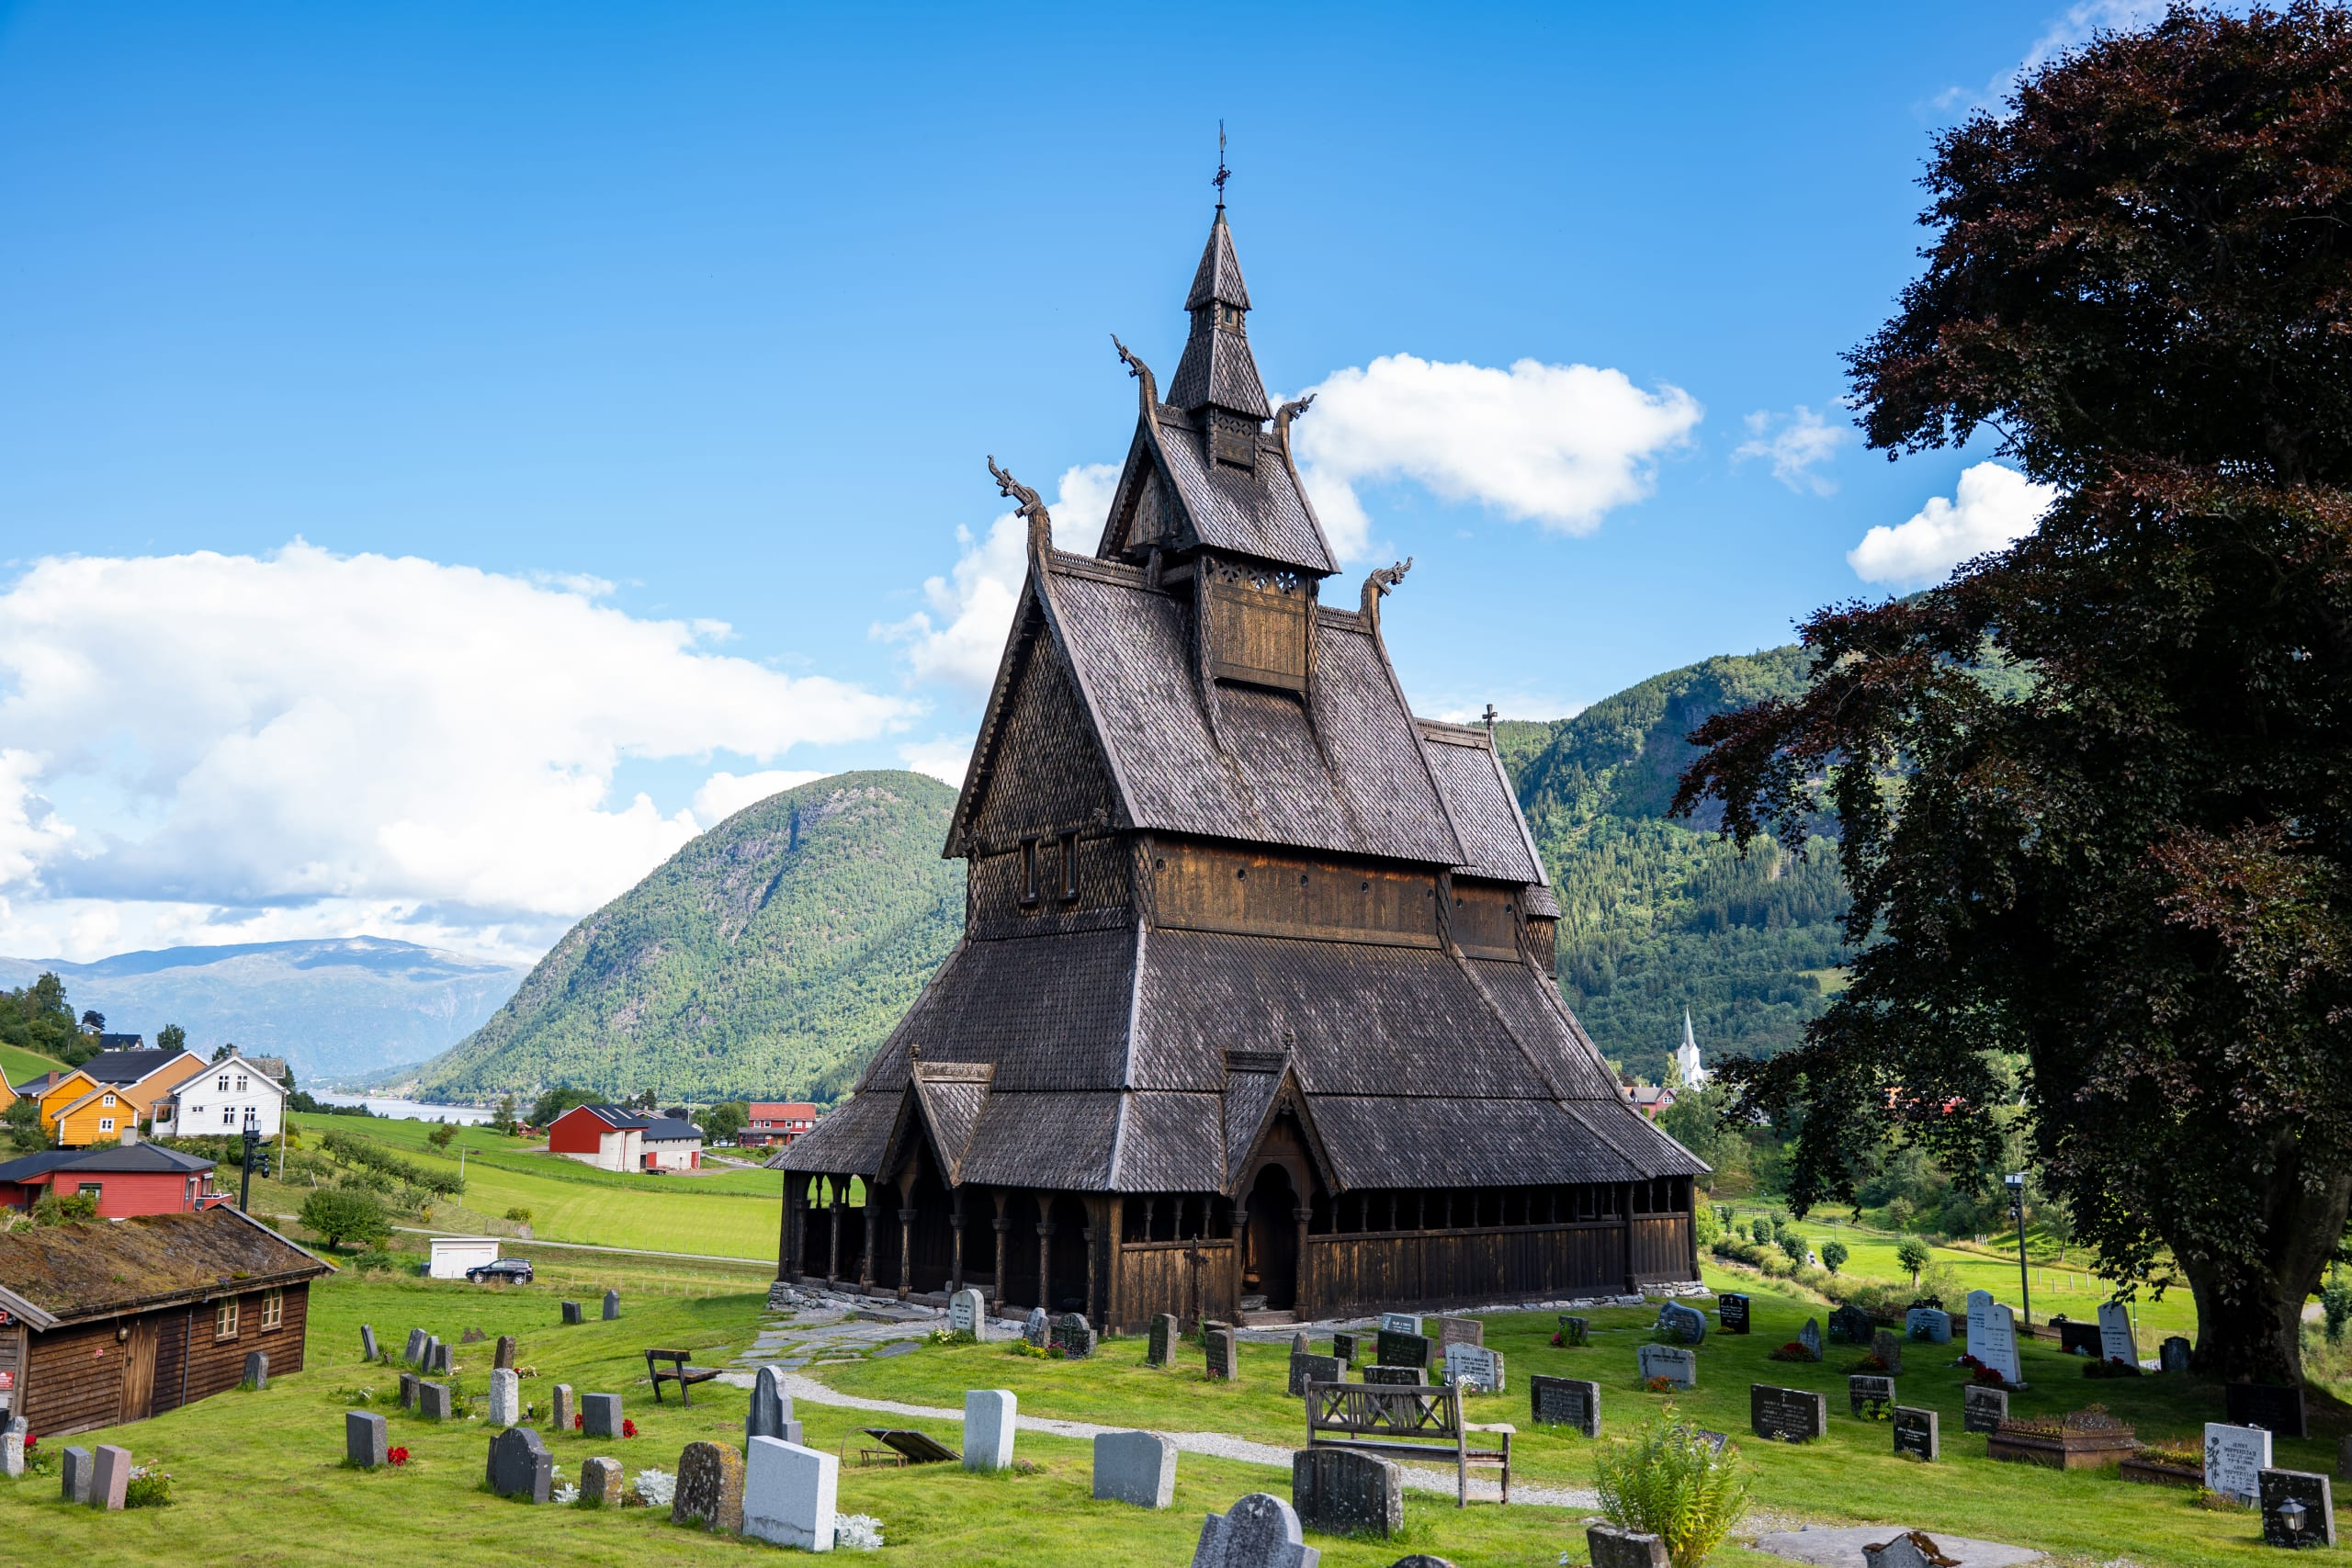 Hopperstad stave church in Vik